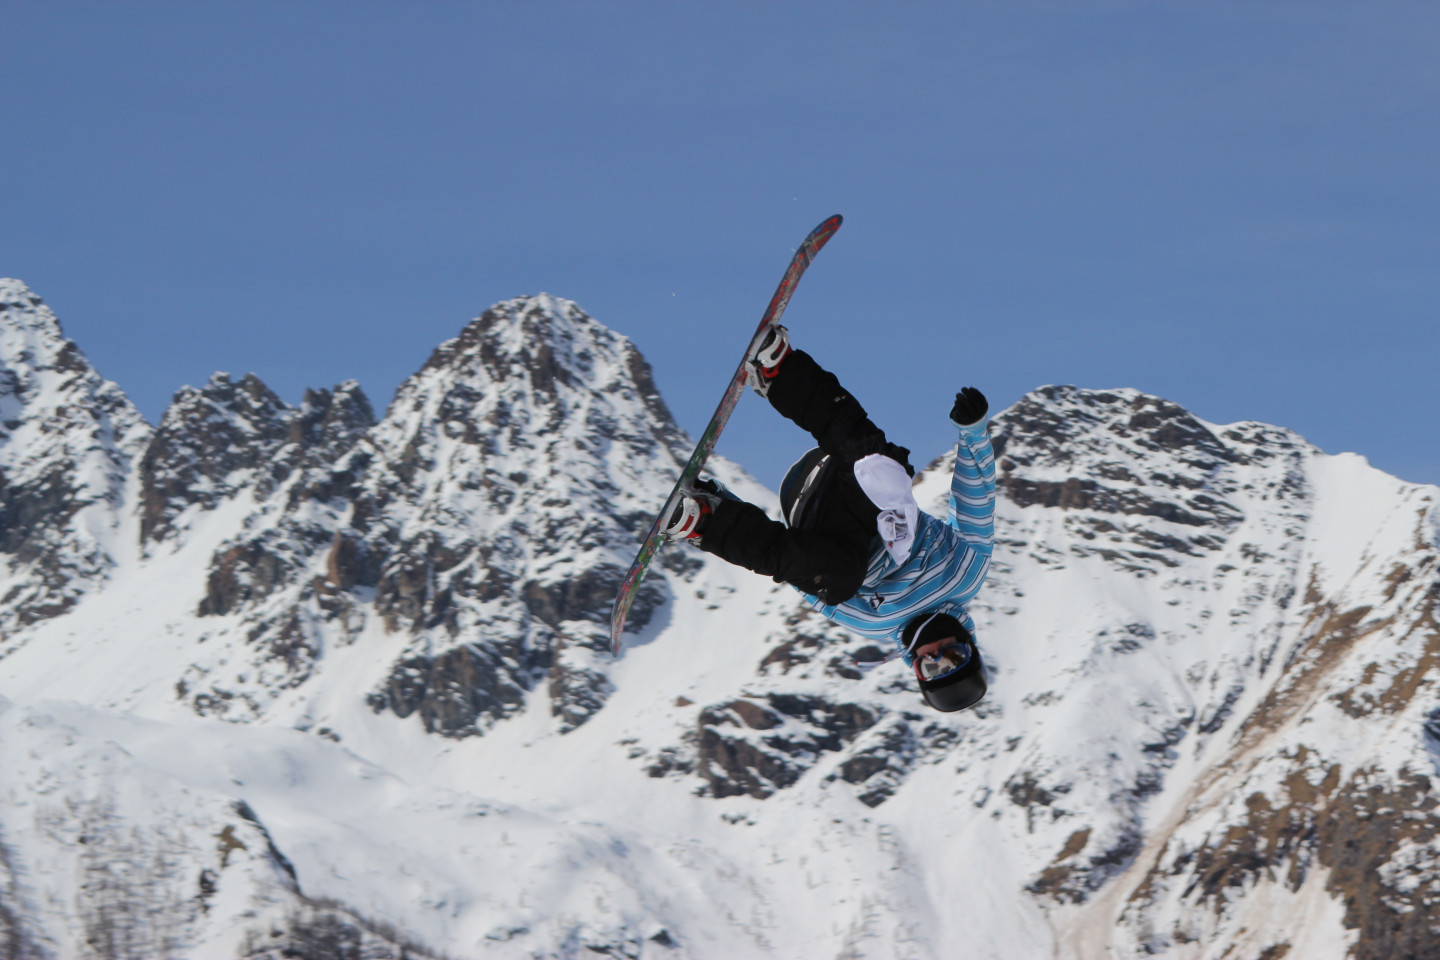 Snowboarder at the Palù Park in Valmalenco